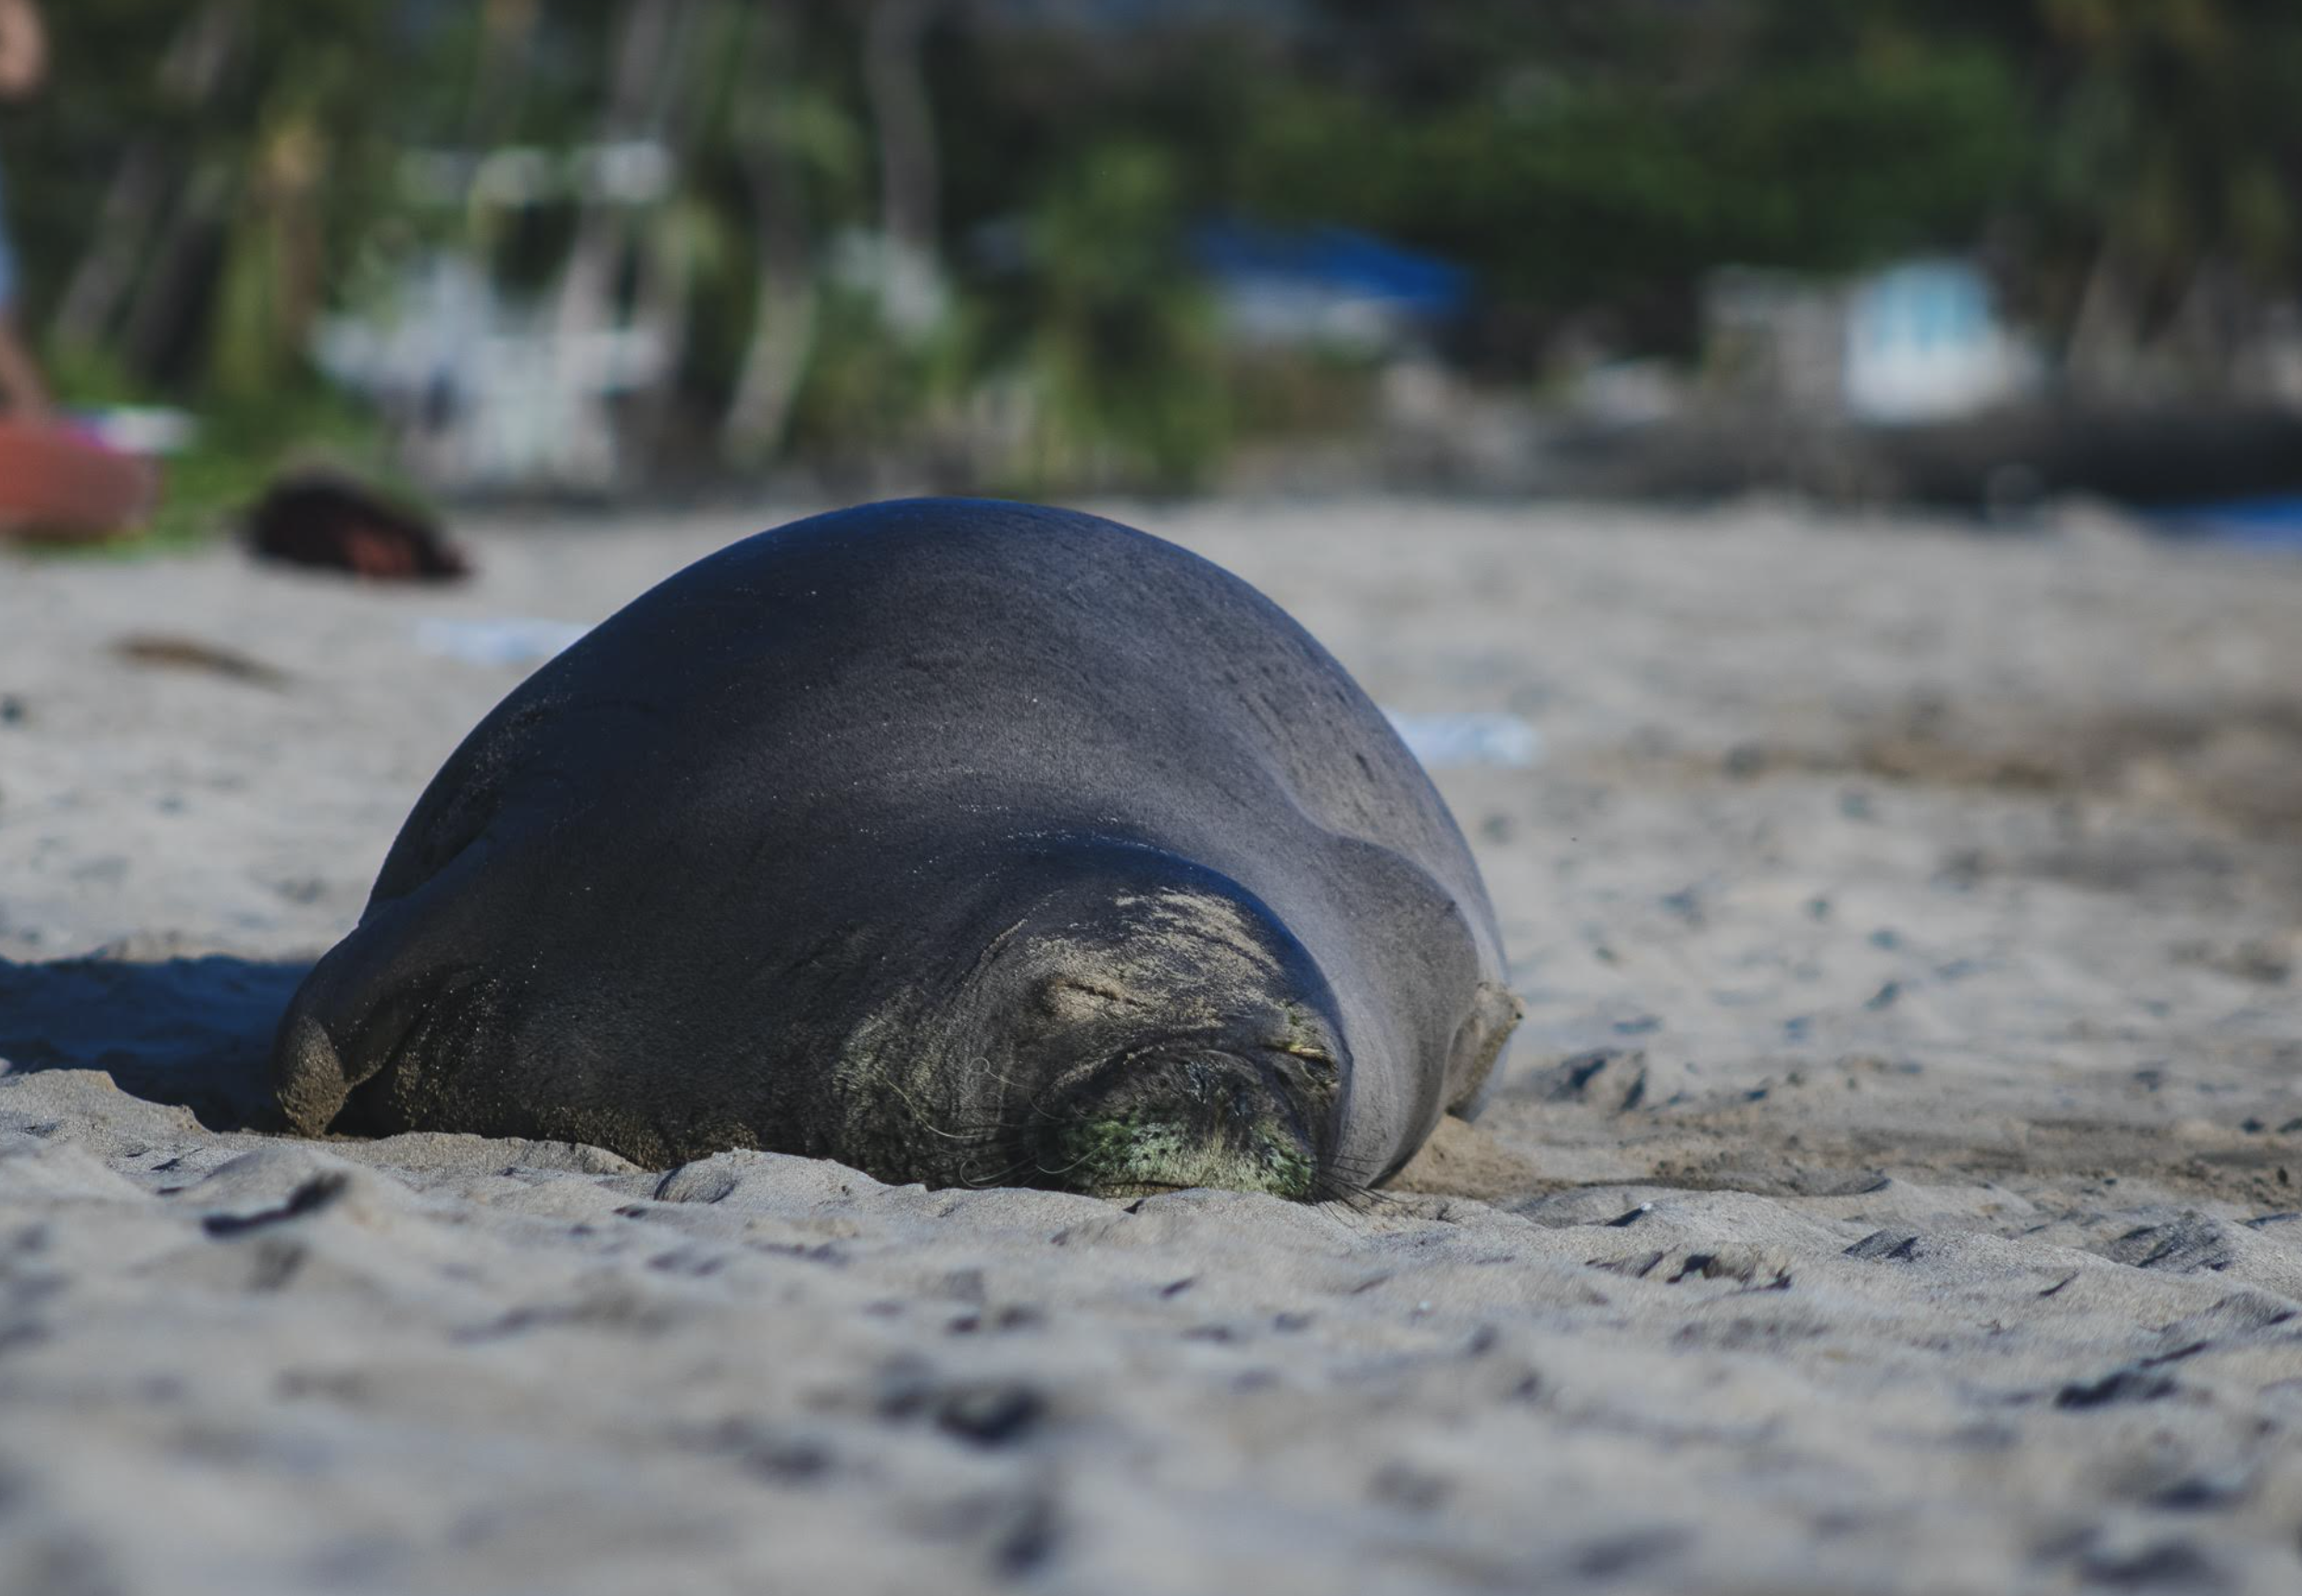 Gov. Ige Asks for Respect Amid Videos of People Touching Endangered Seals